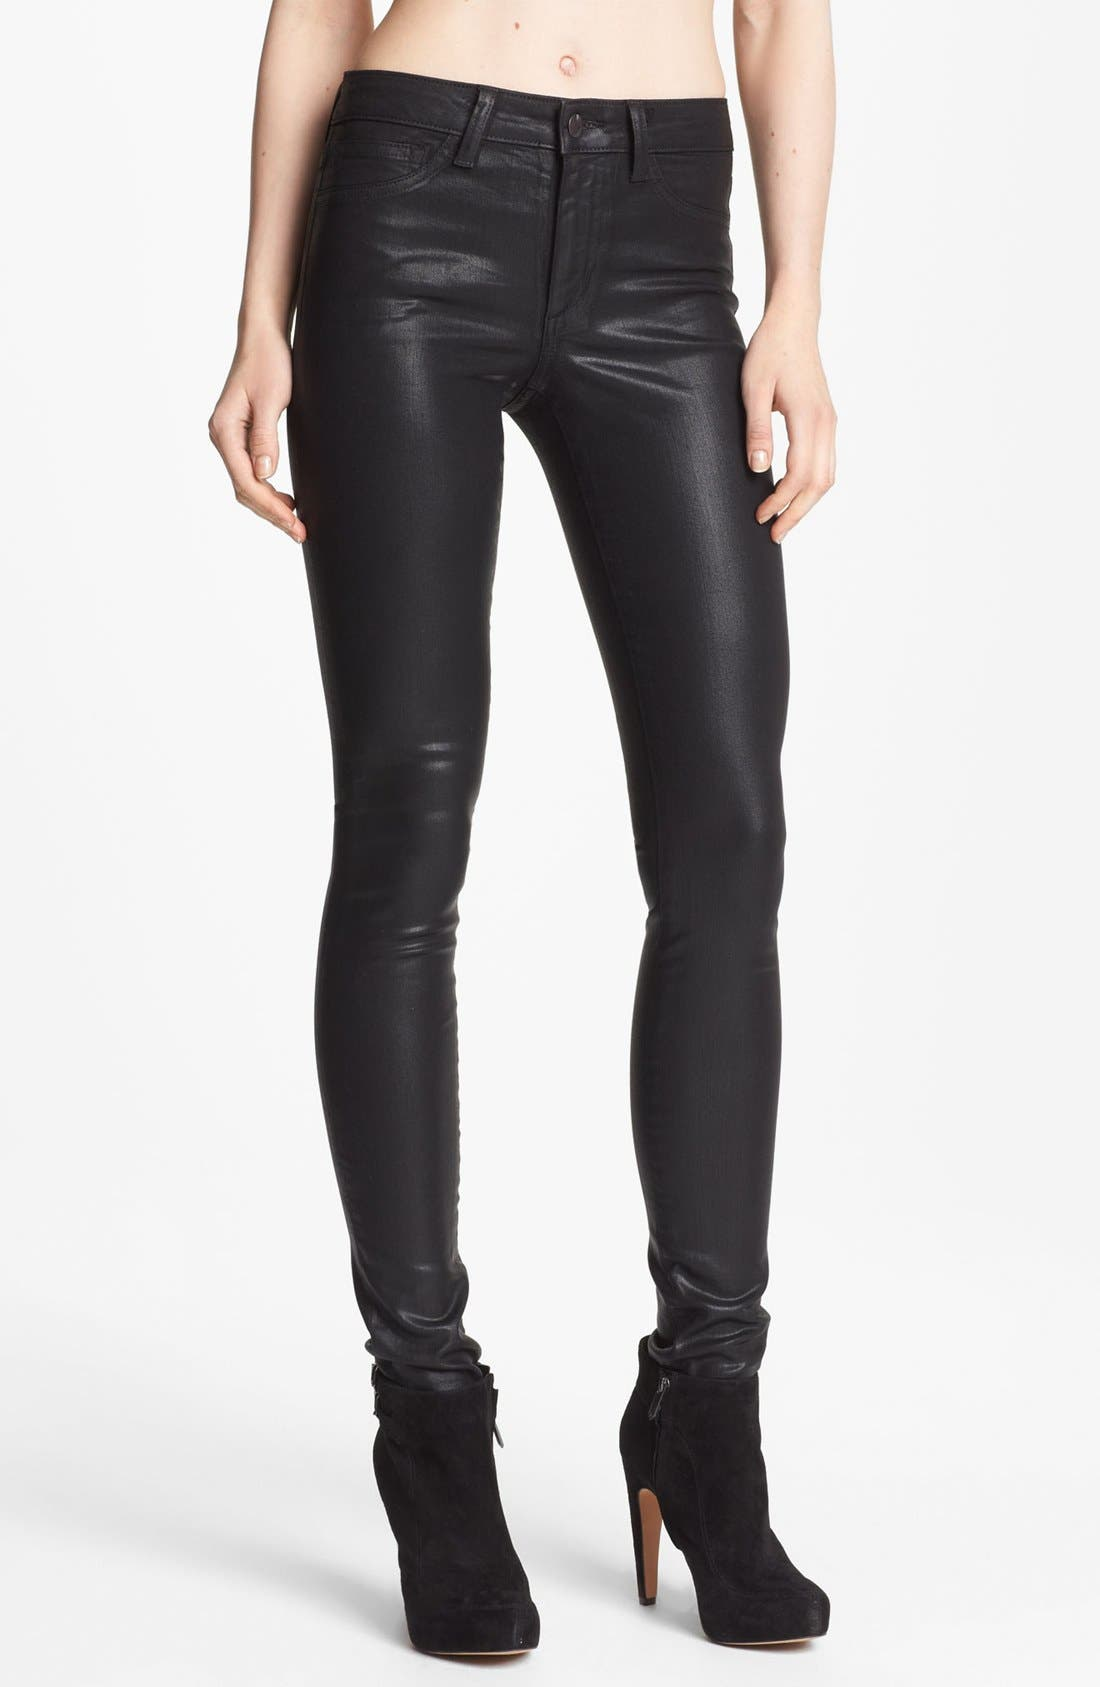 Alternate Image 1 Selected - Joe's 'The Skinny' Coated Stretch Jeans (Black)